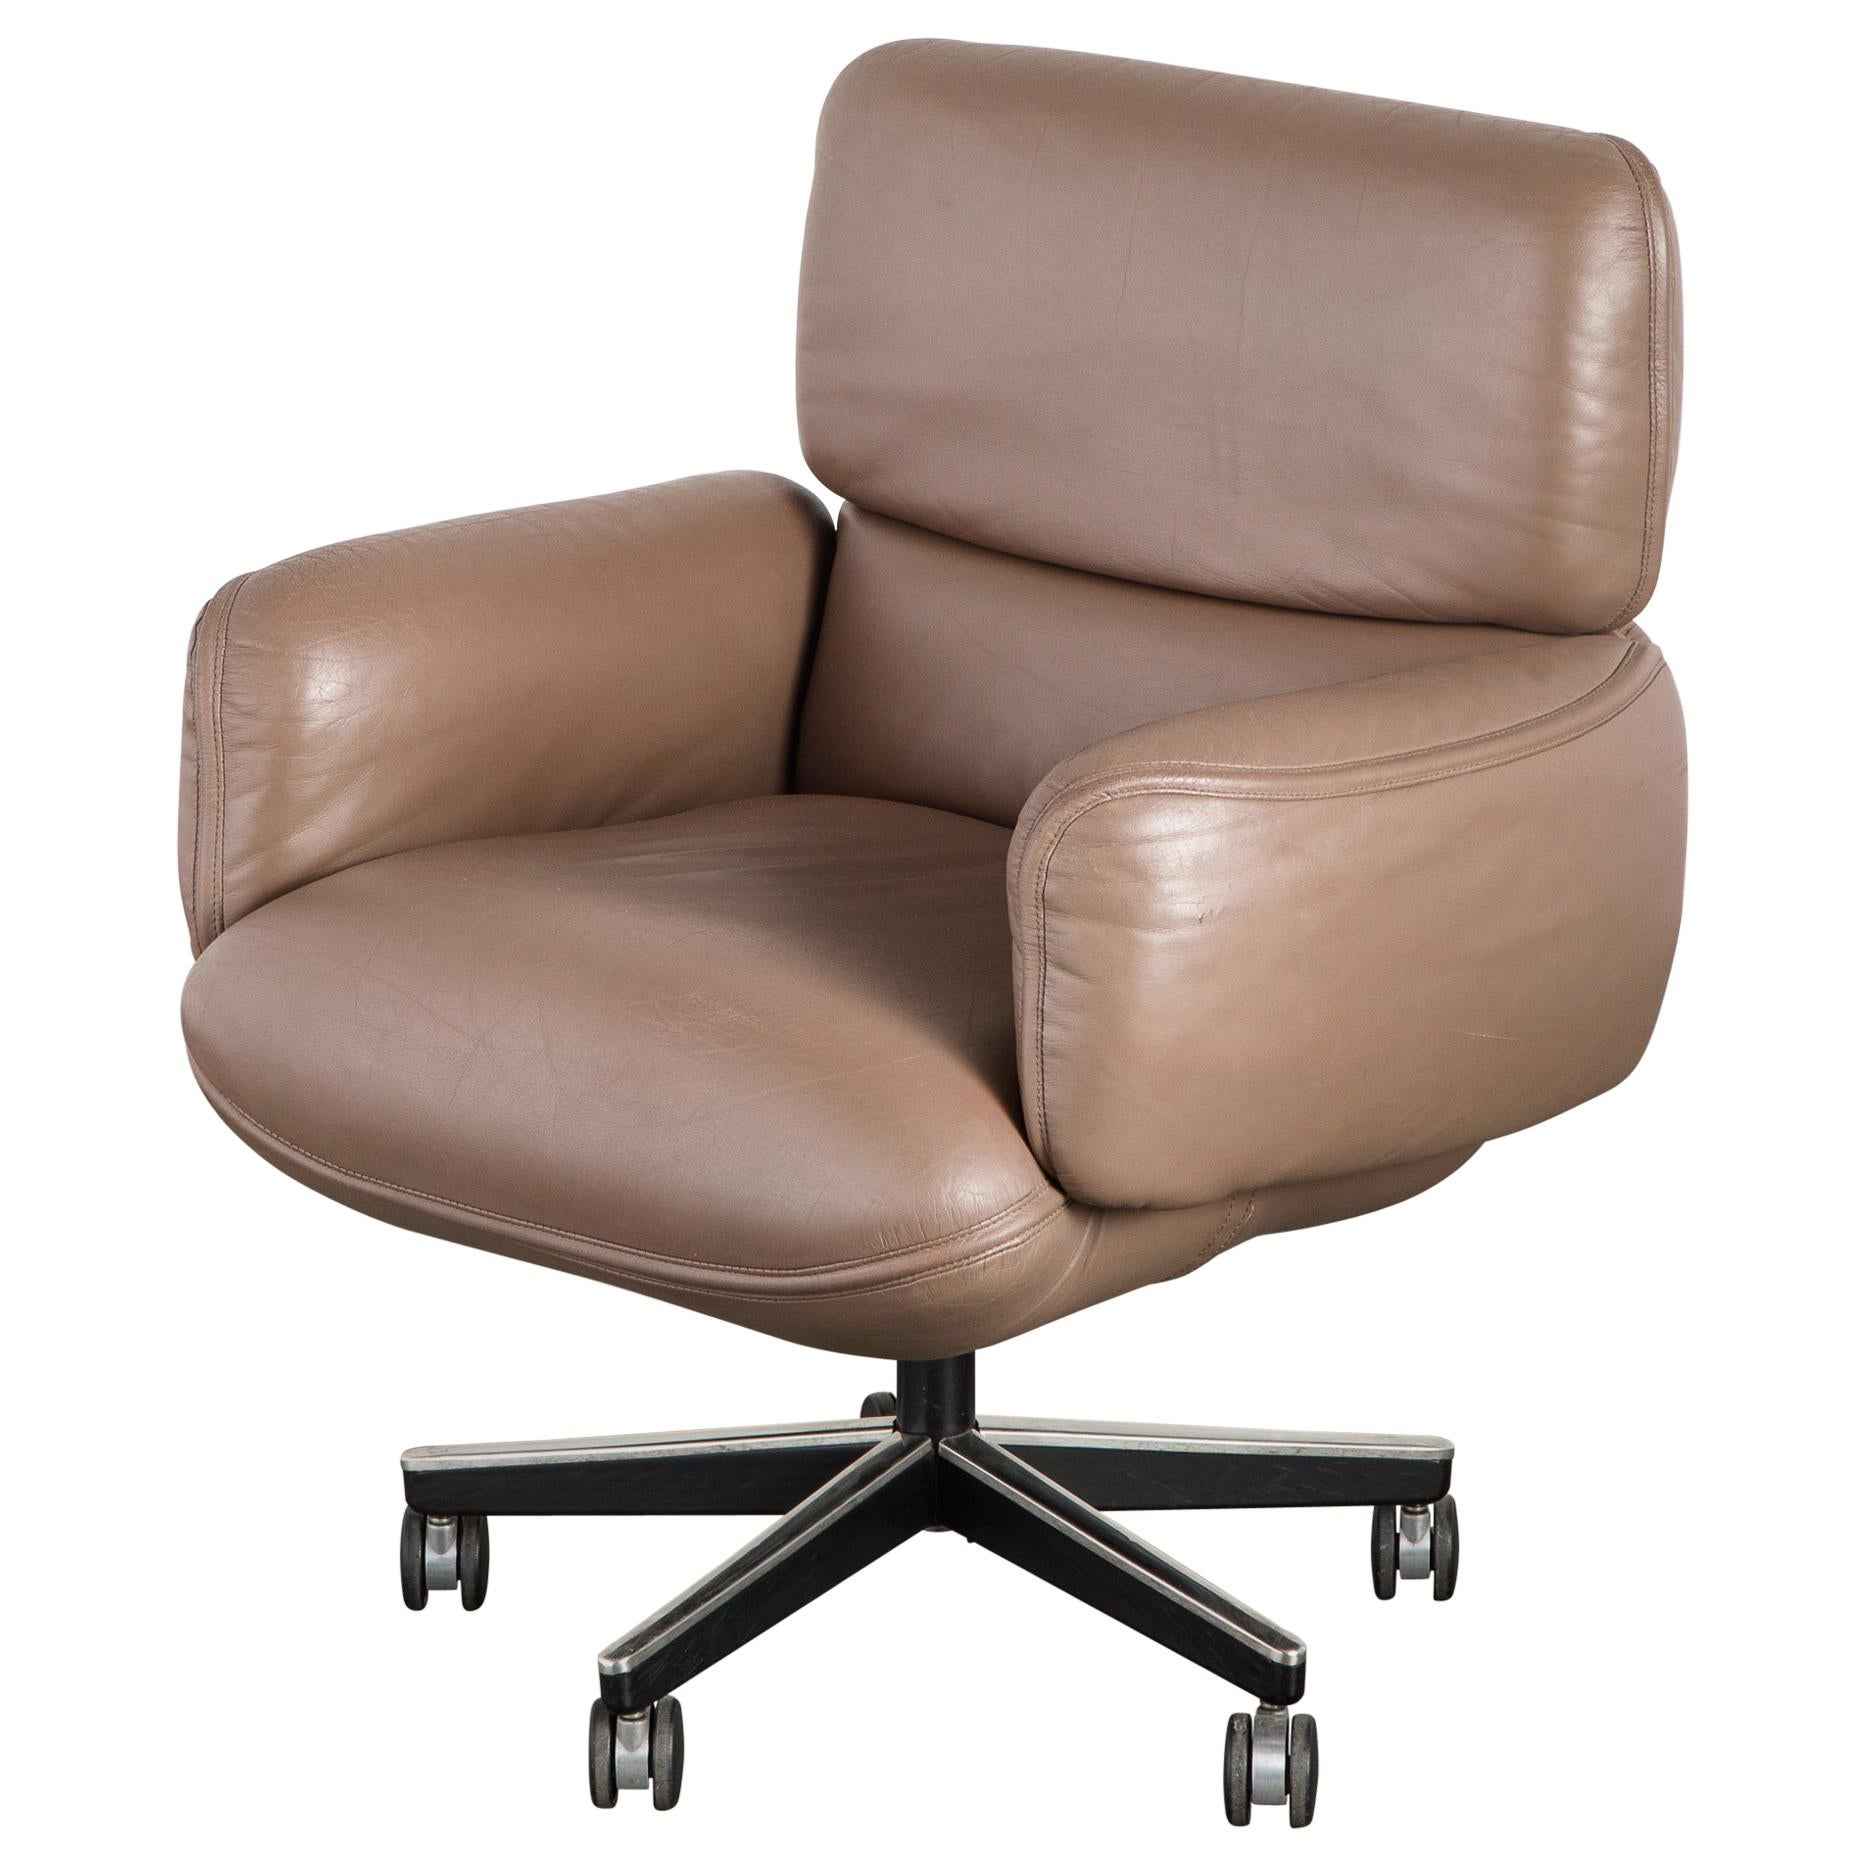 Otto Zapf for Knoll International Leather Desk Chair, c. 1985, Signed